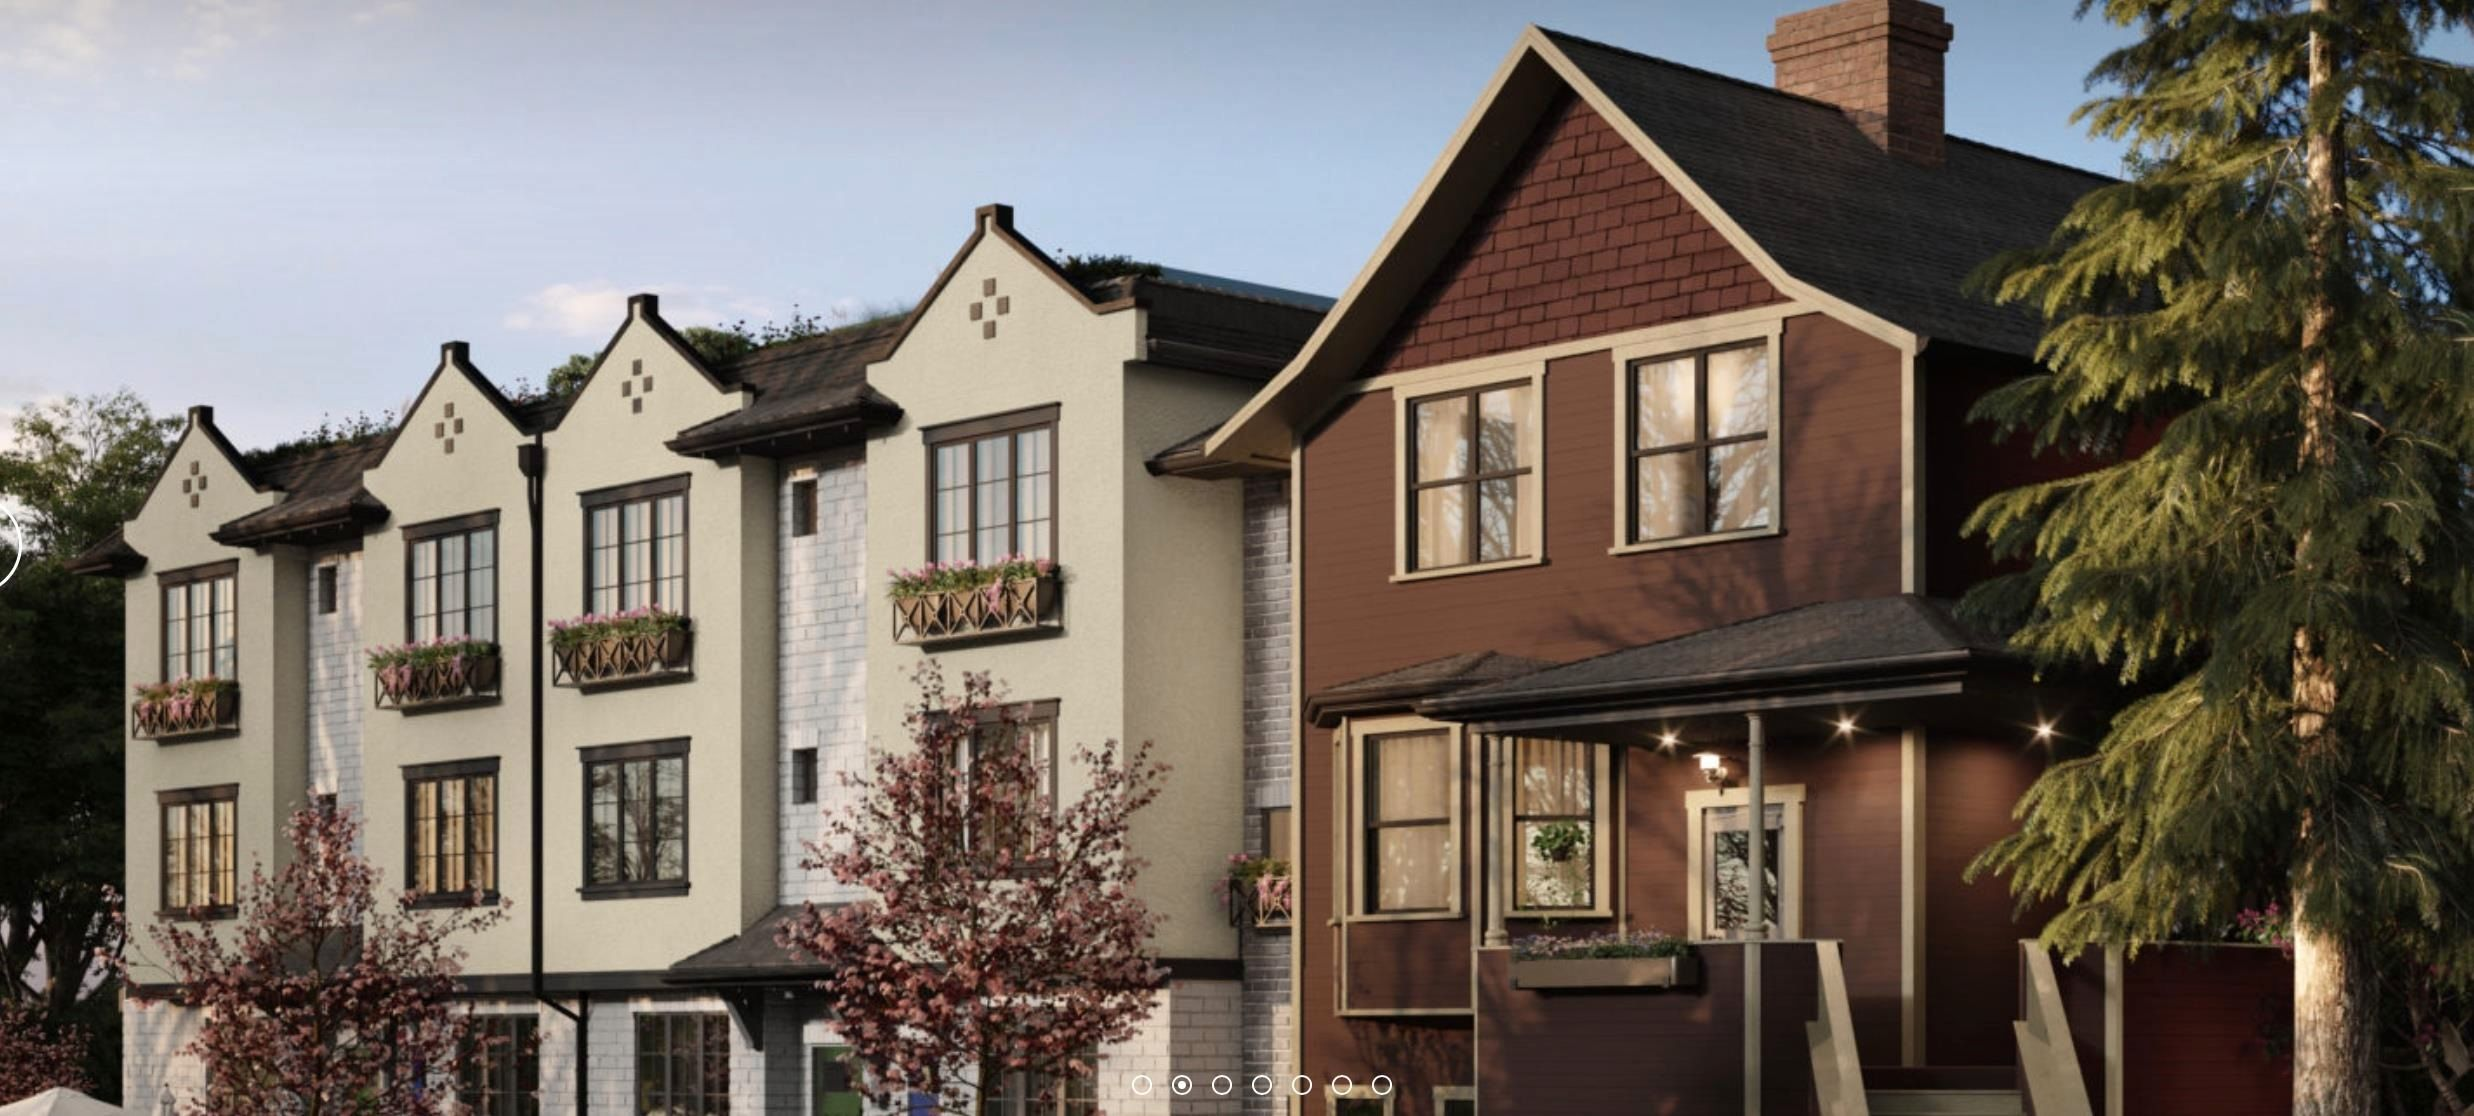 """Main Photo: 1897 W 2ND Avenue in Vancouver: Kitsilano Townhouse for sale in """"Heritage Cypress"""" (Vancouver West)  : MLS®# R2614743"""